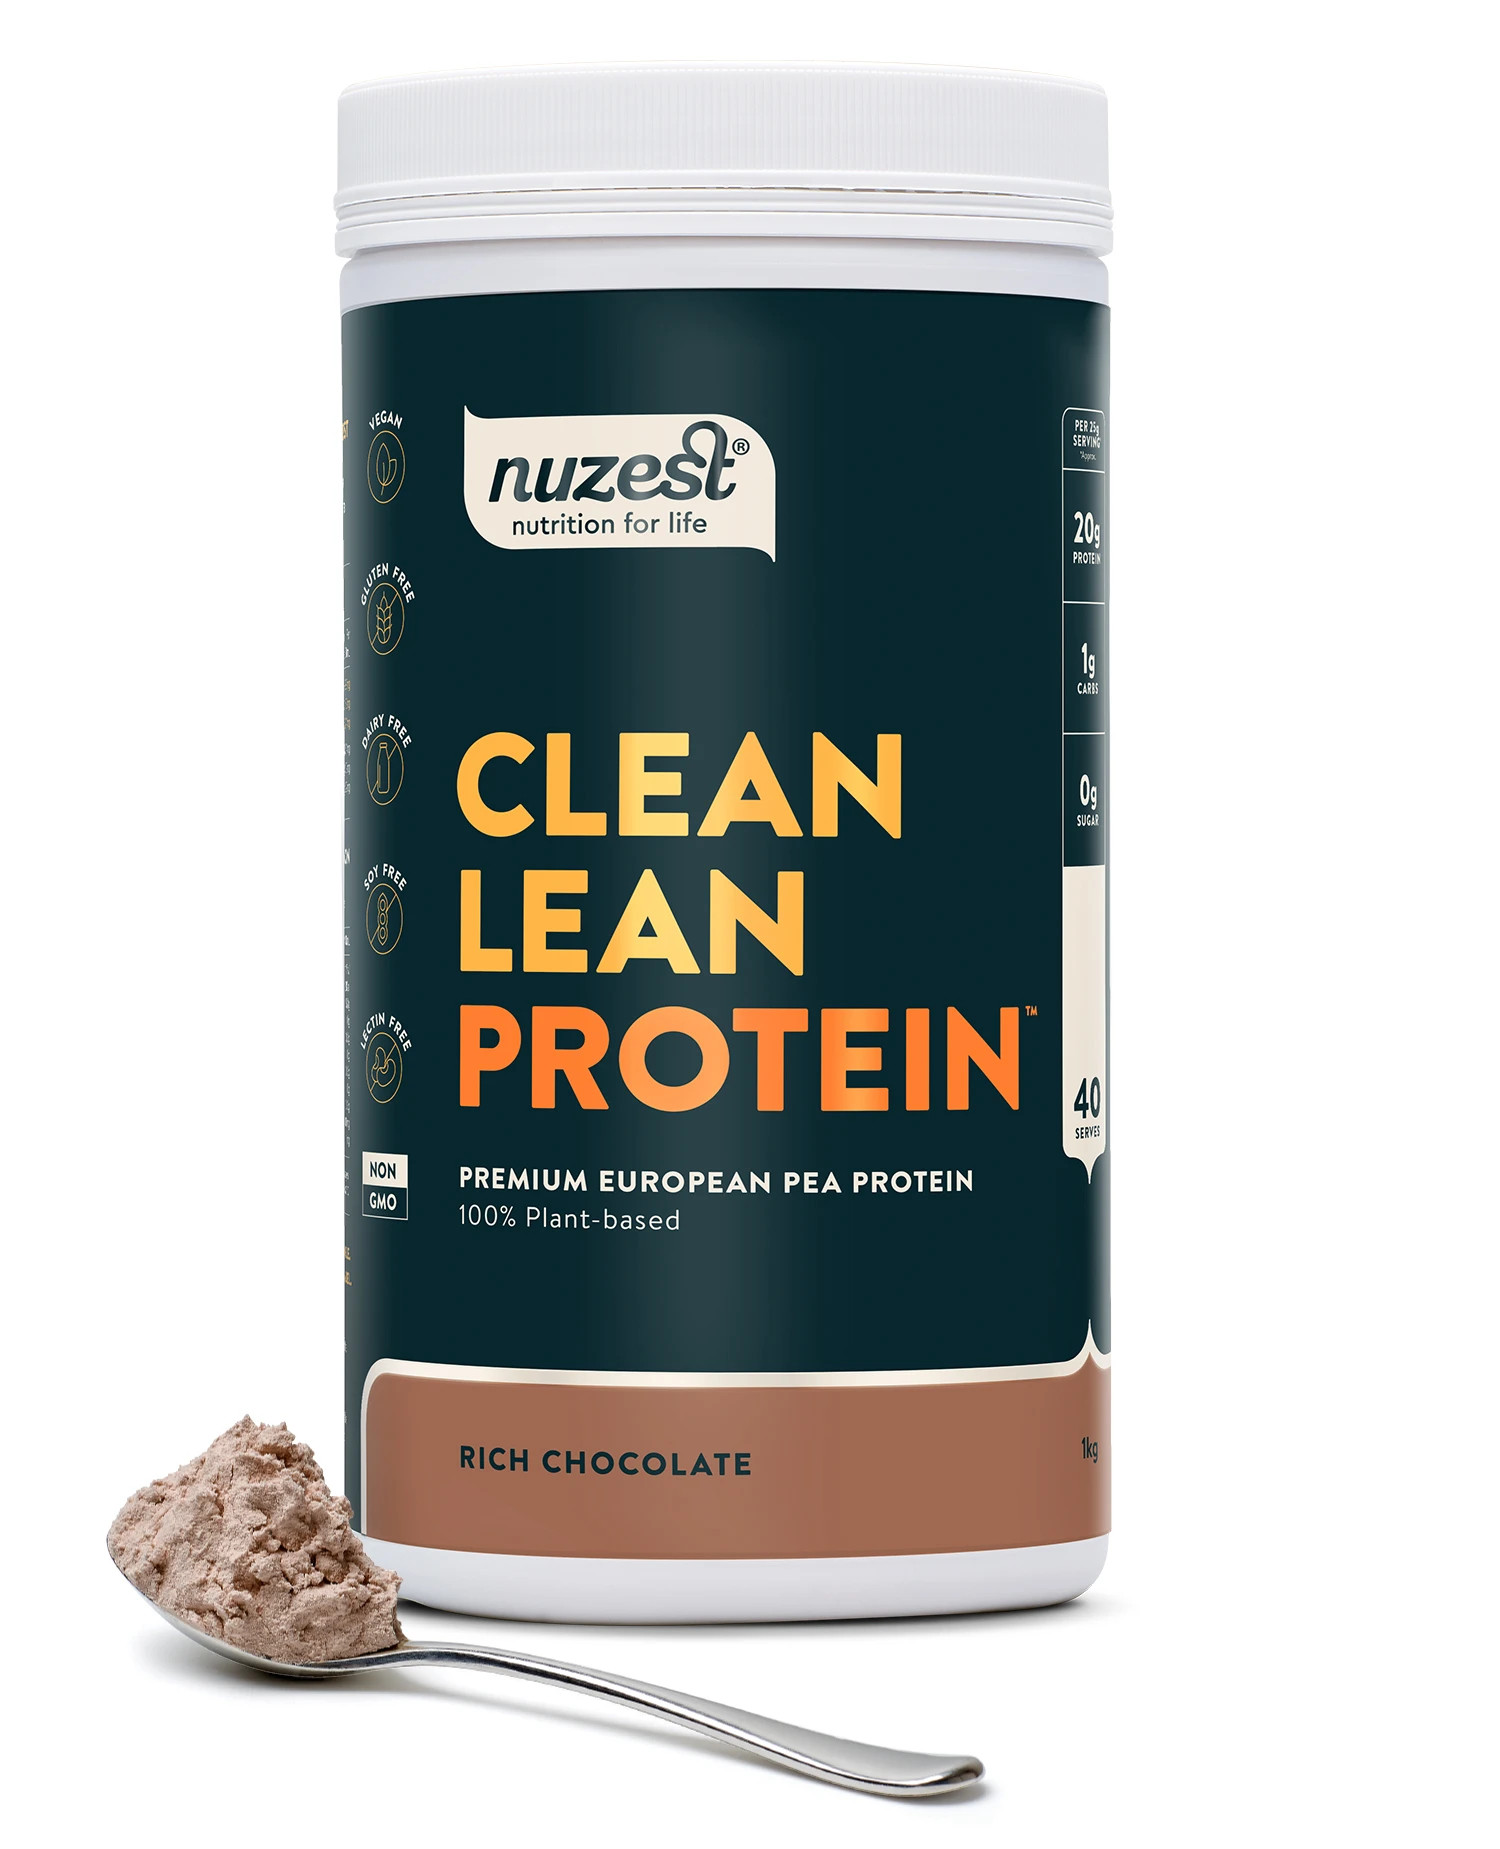 Nuzest Clean Learn Protein Rich Chocolate